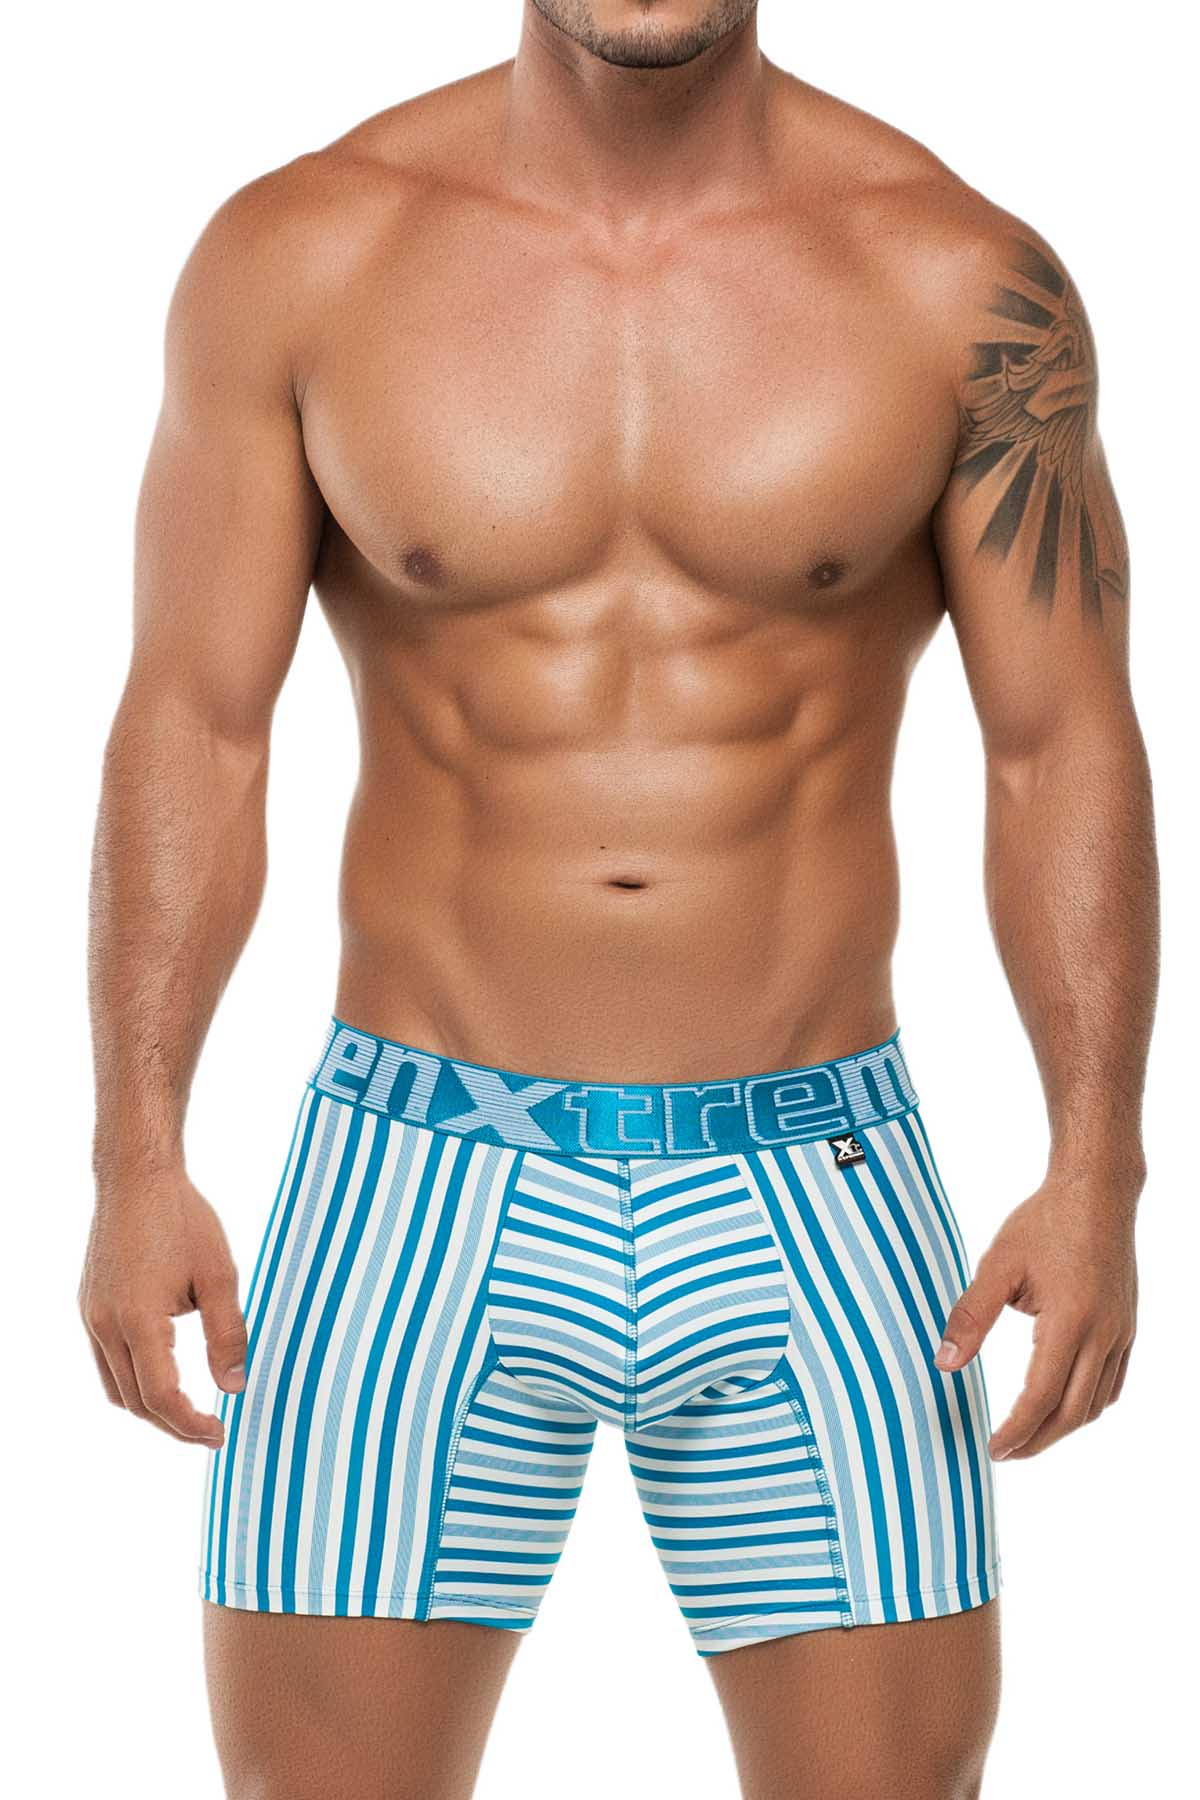 Xtremen Blue Classic Stripes Microfiber Boxer Brief